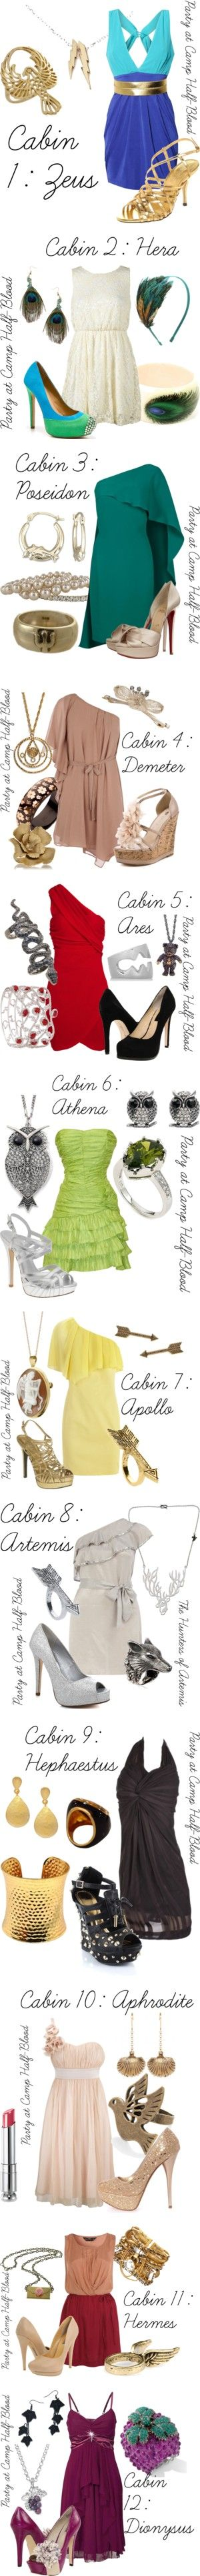 """Percy Jackson: Cabins"" by ellalea ❤ liked on Polyvore <<< some of these I don't like but others I do"